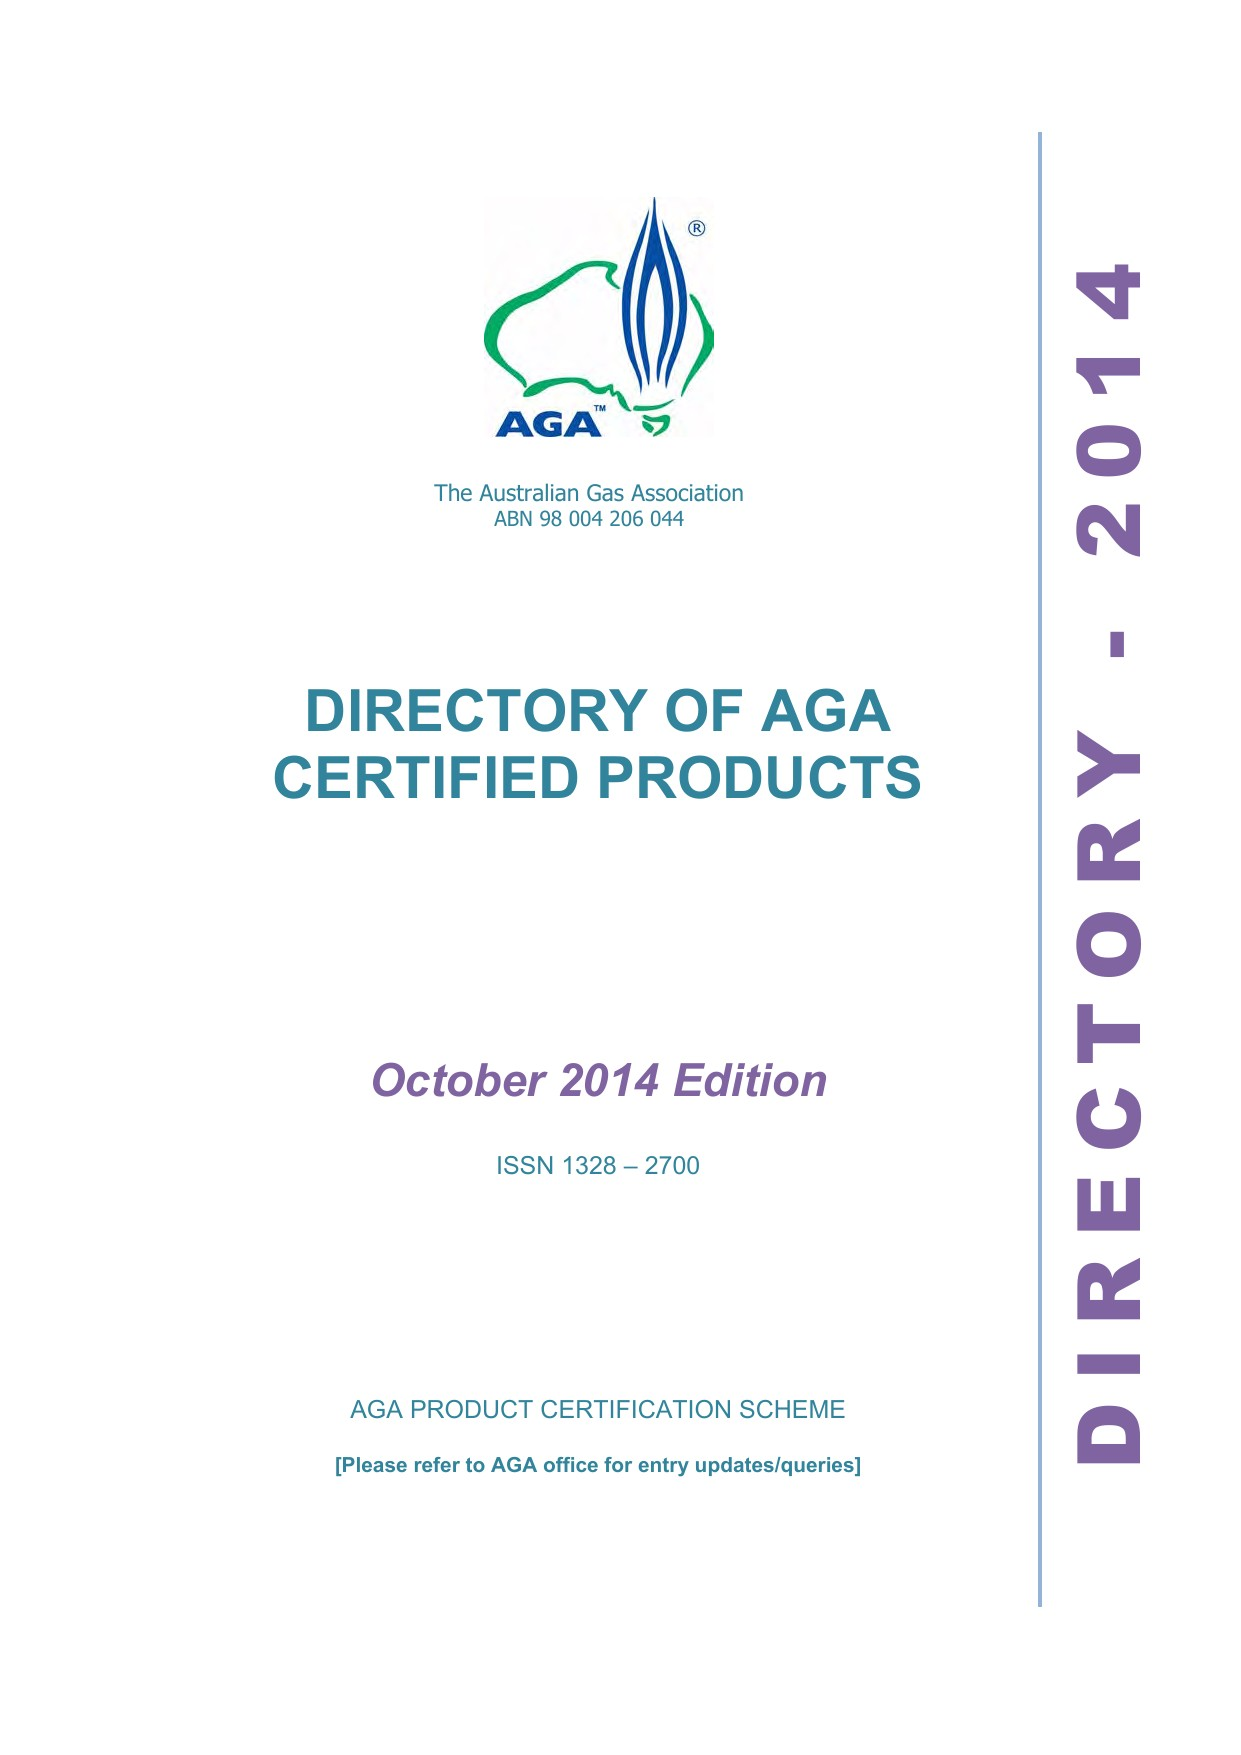 Wiring Diagram for Eccotemp L5 Directory 20 1 4 the Australian Gas association Of Wiring Diagram for Eccotemp L5